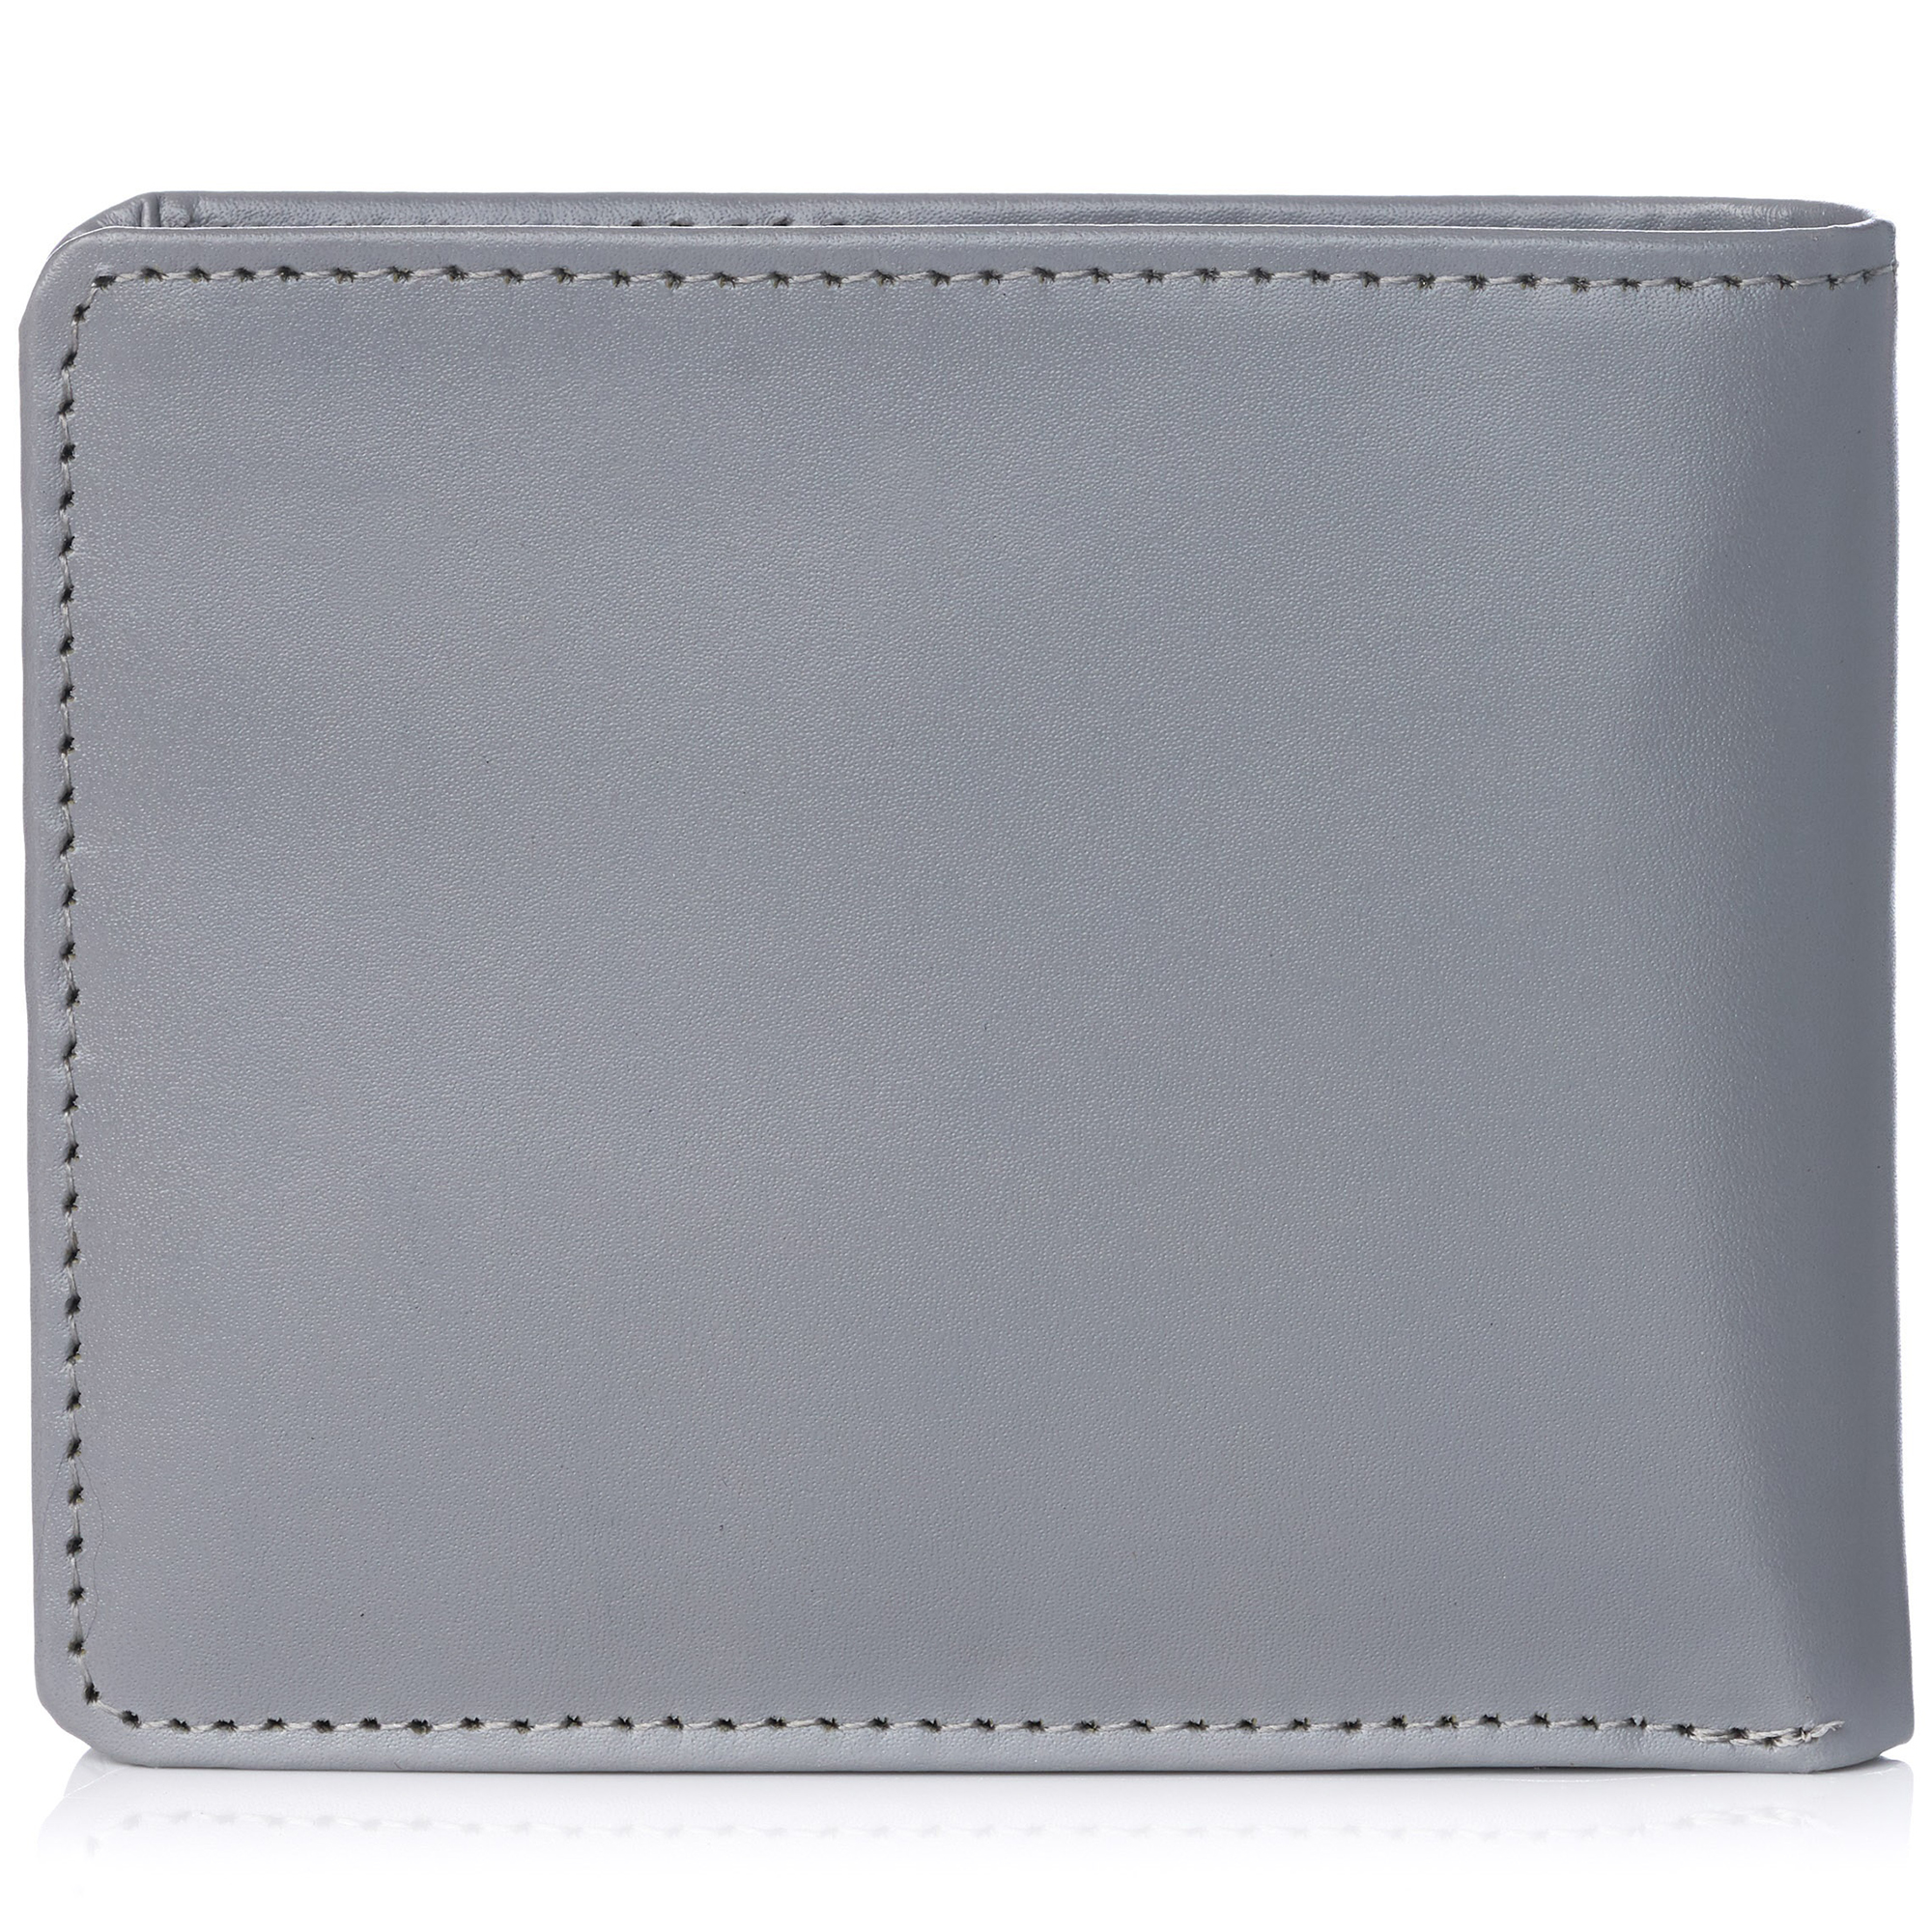 miniature 81 - Alpine-Swiss-RFID-Mens-Wallet-Deluxe-Capacity-Passcase-Bifold-Two-Bill-Sections